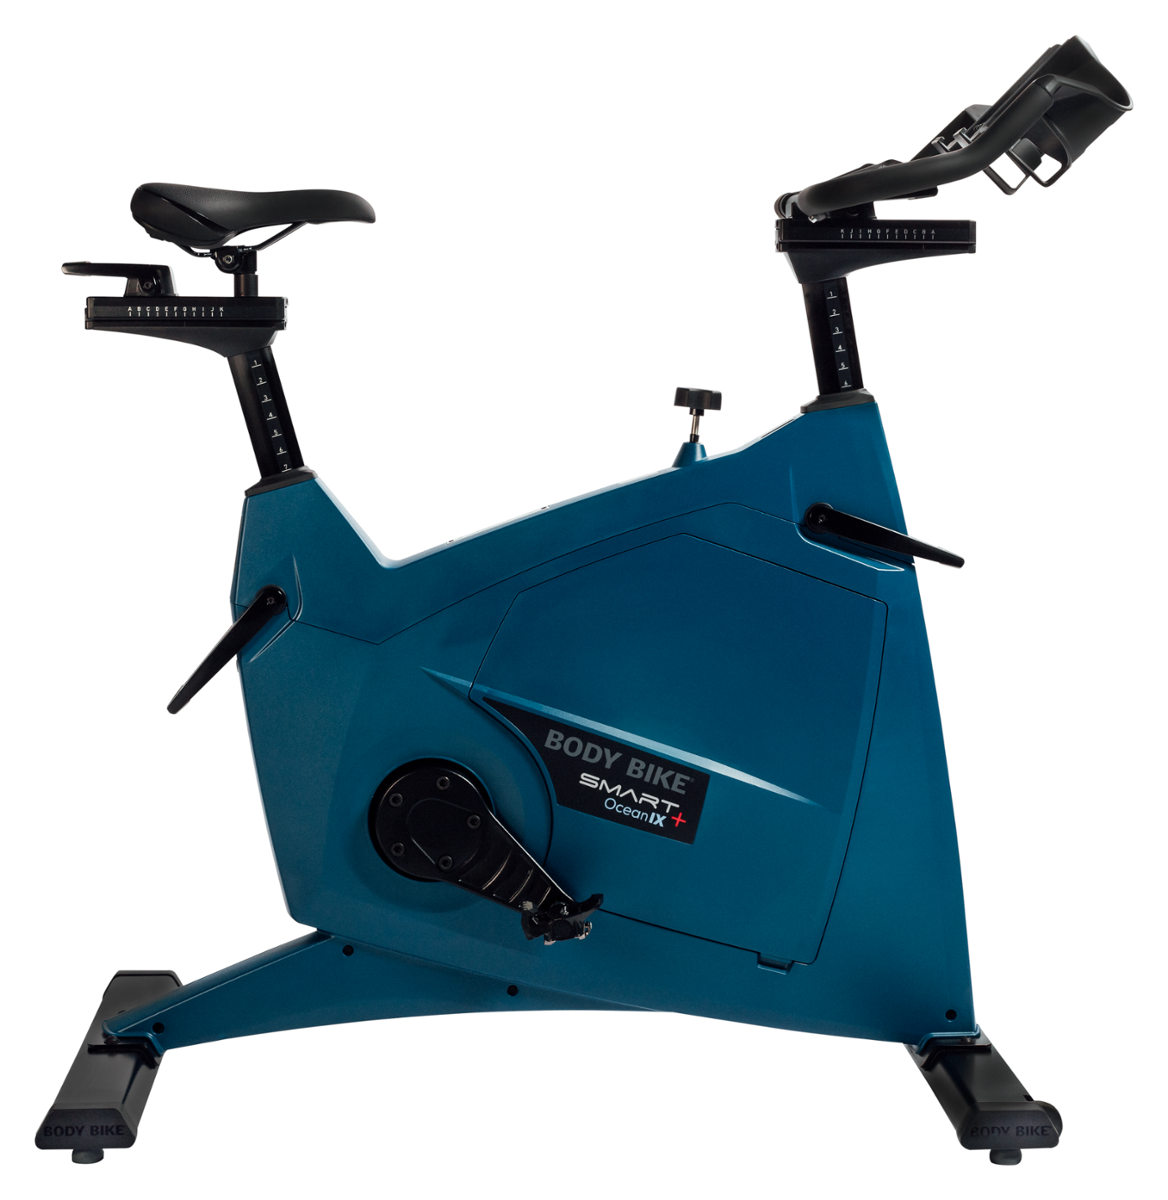 Rower Spiningowy Smart+ OceanIX 99110000X Body Bike Ocean Blue